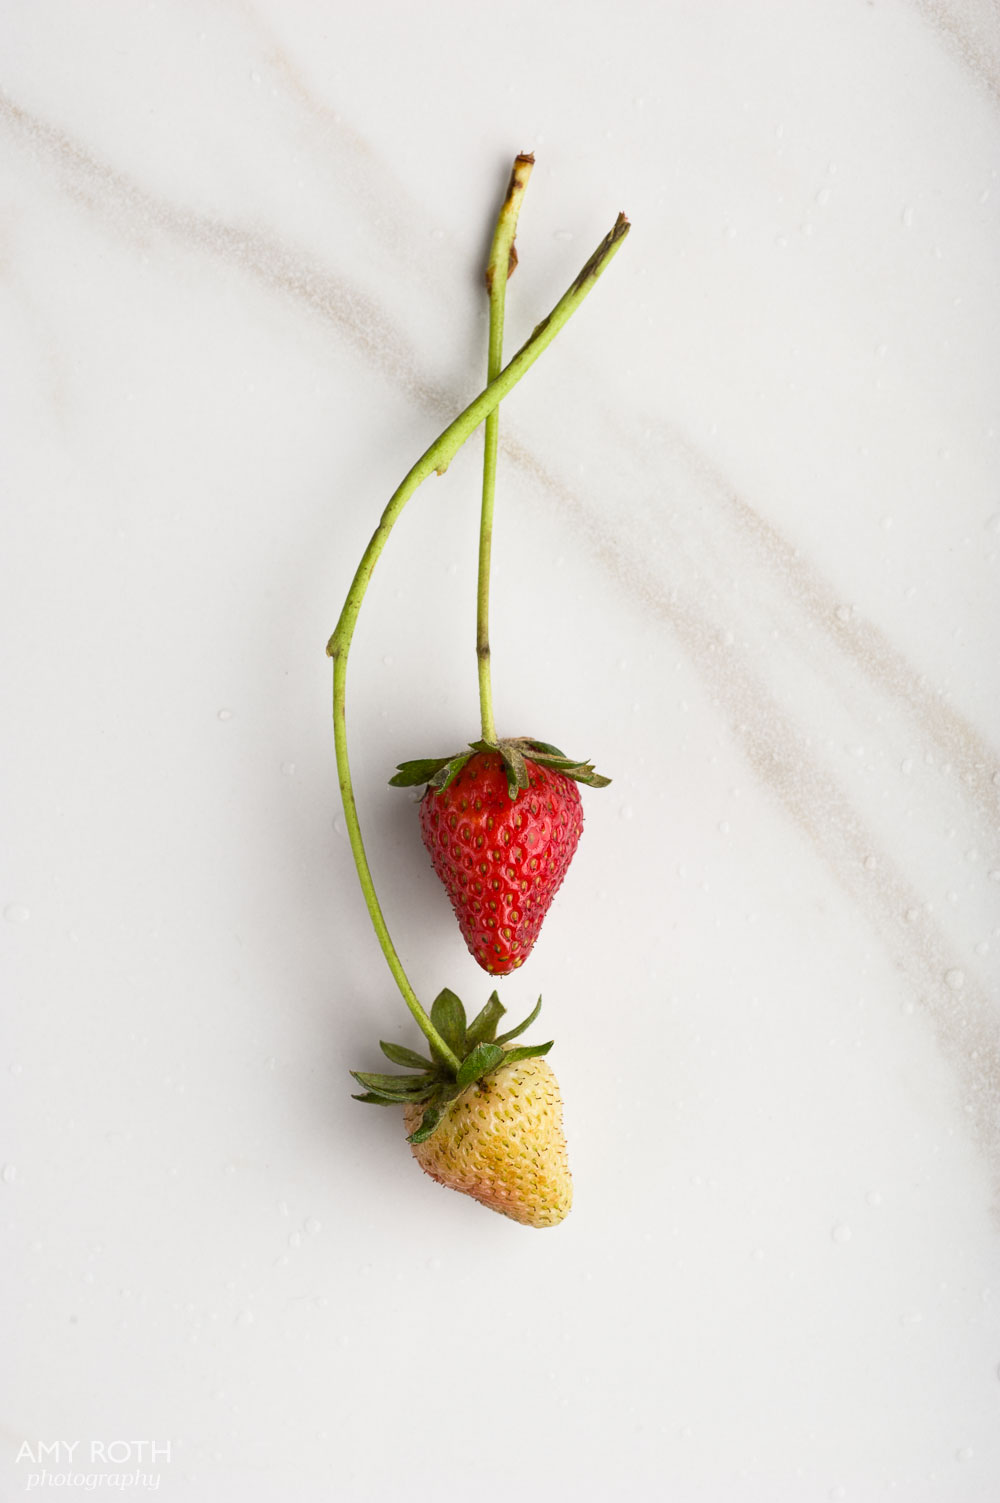 Strawberry Portrait at Minimally Invasive